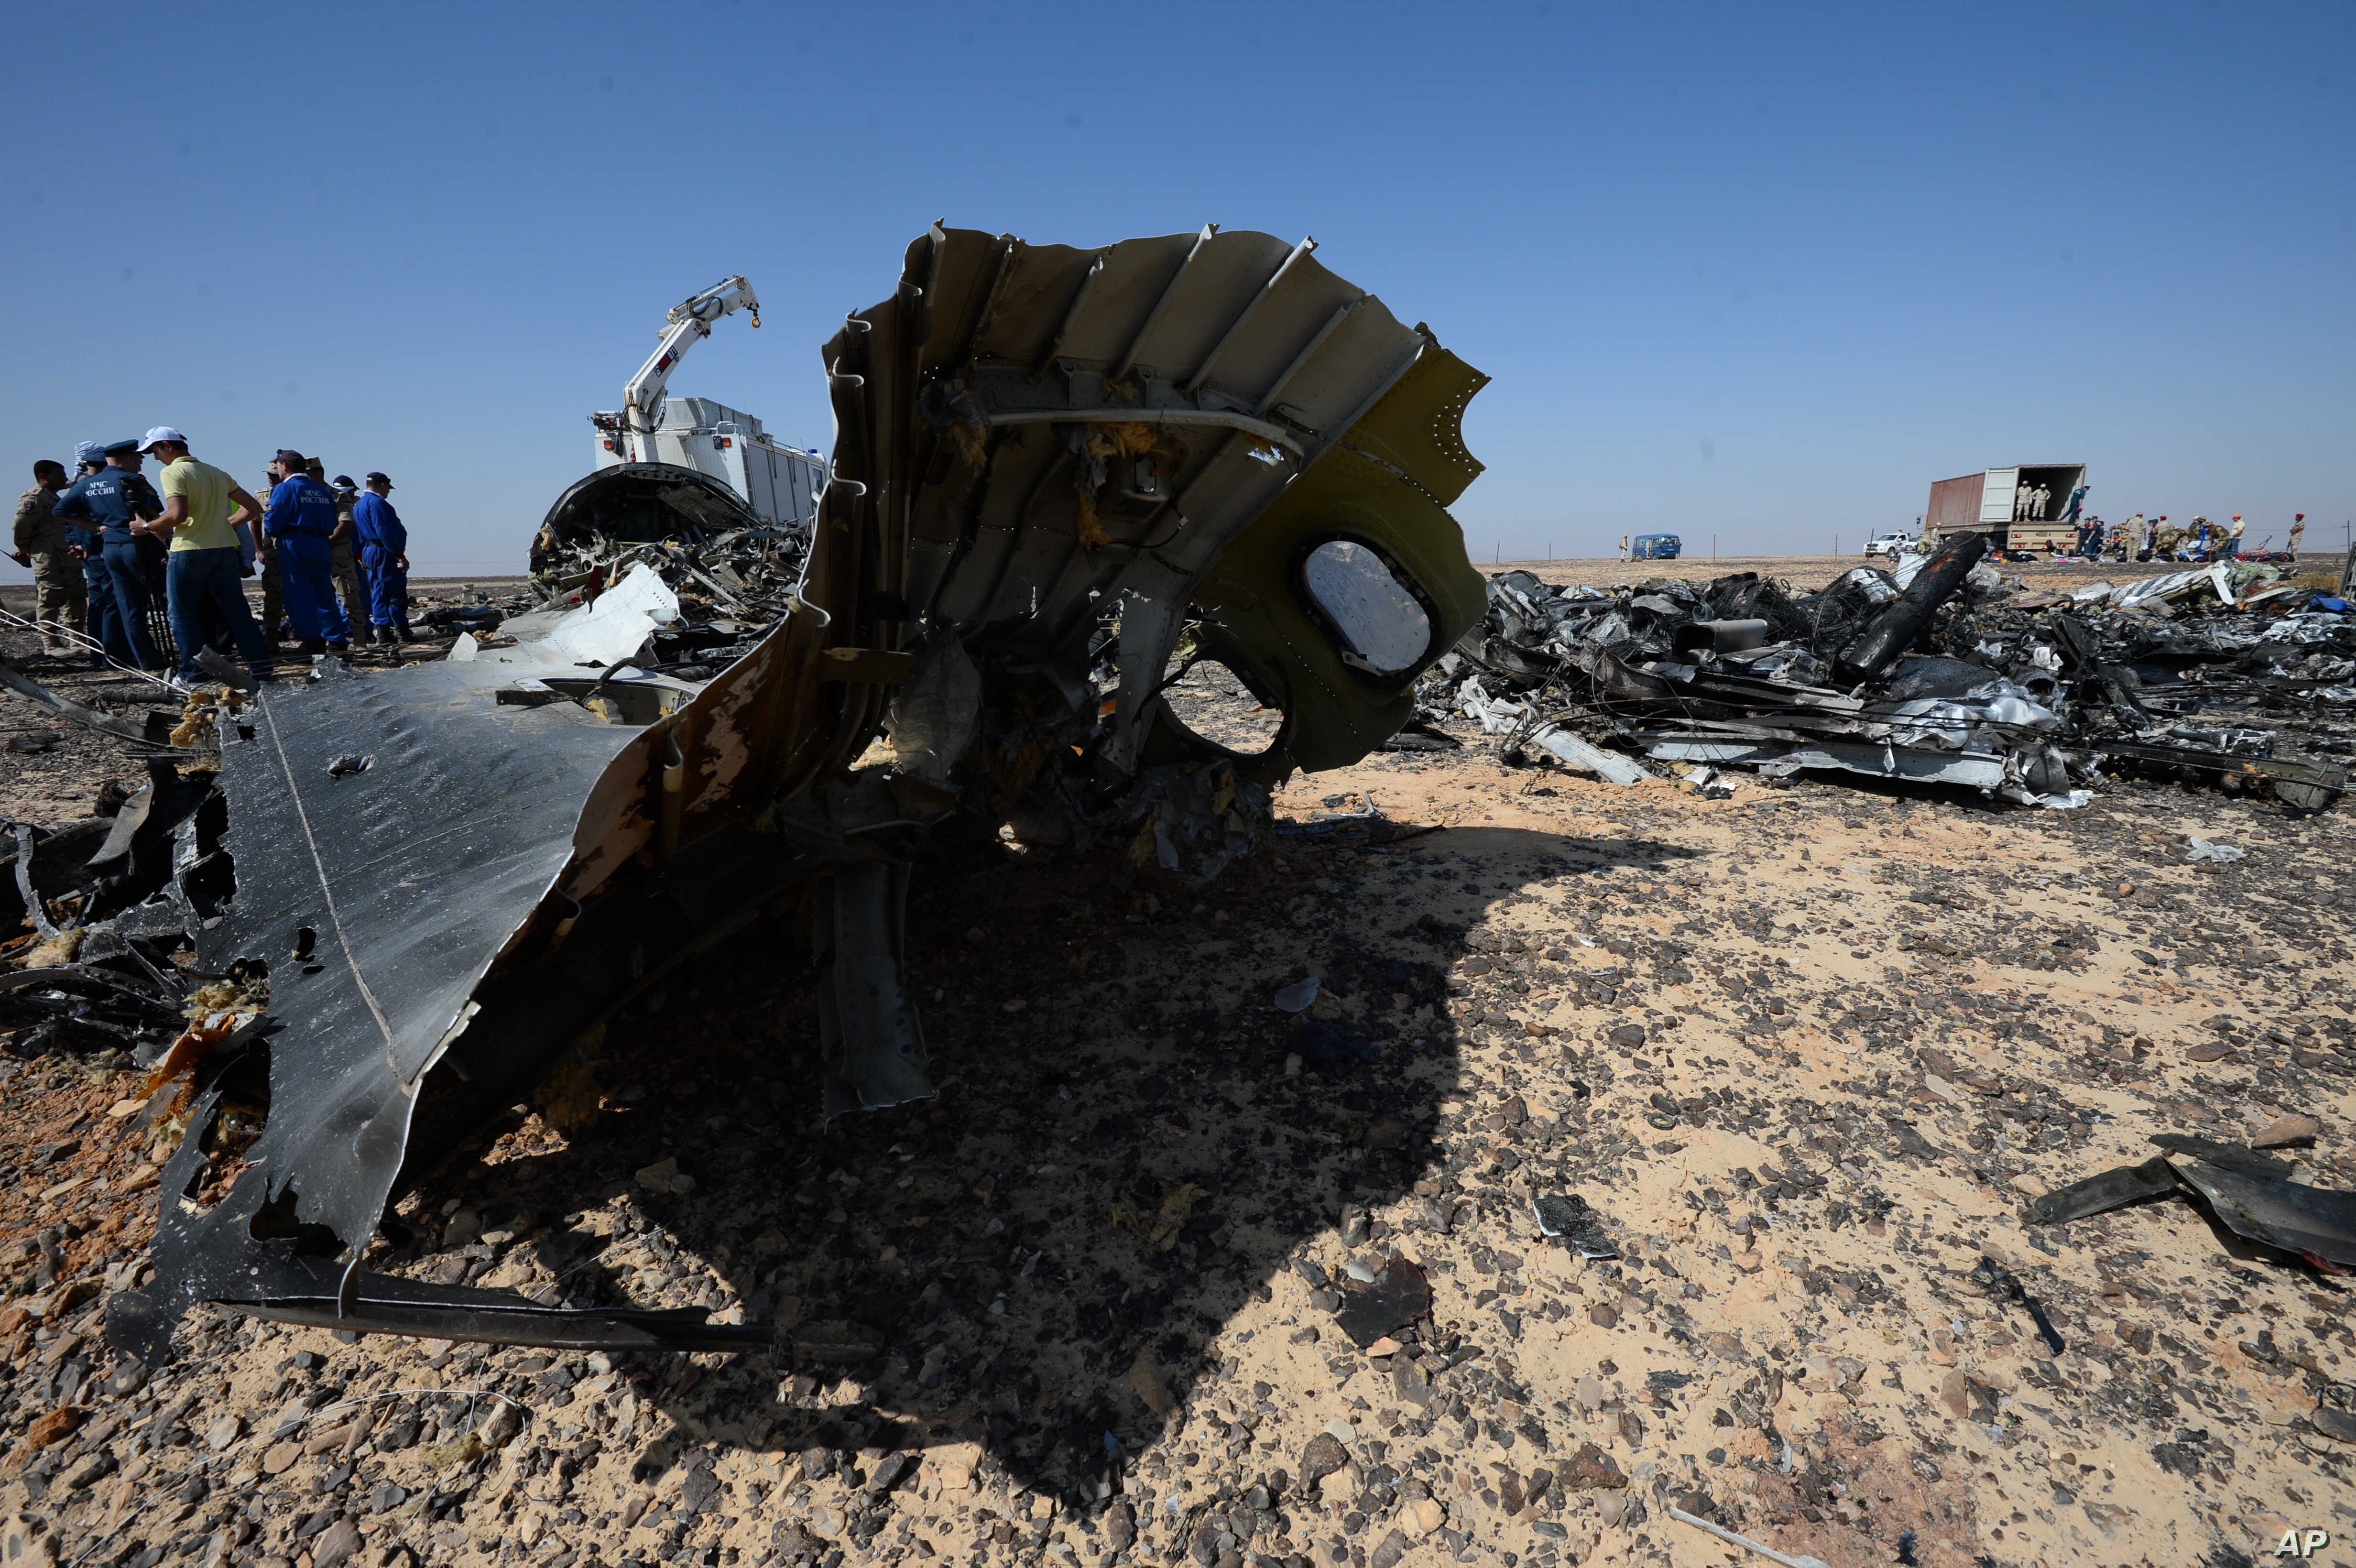 In this Russian Emergency Situations Ministry photo, Russian Emergency Ministry experts work at the crash site of a Russian passenger plane bound for St. Petersburg in Russia that crashed Saturday in Hassana, Egypt's Sinai Peninsula, Nov. 2, 2015.